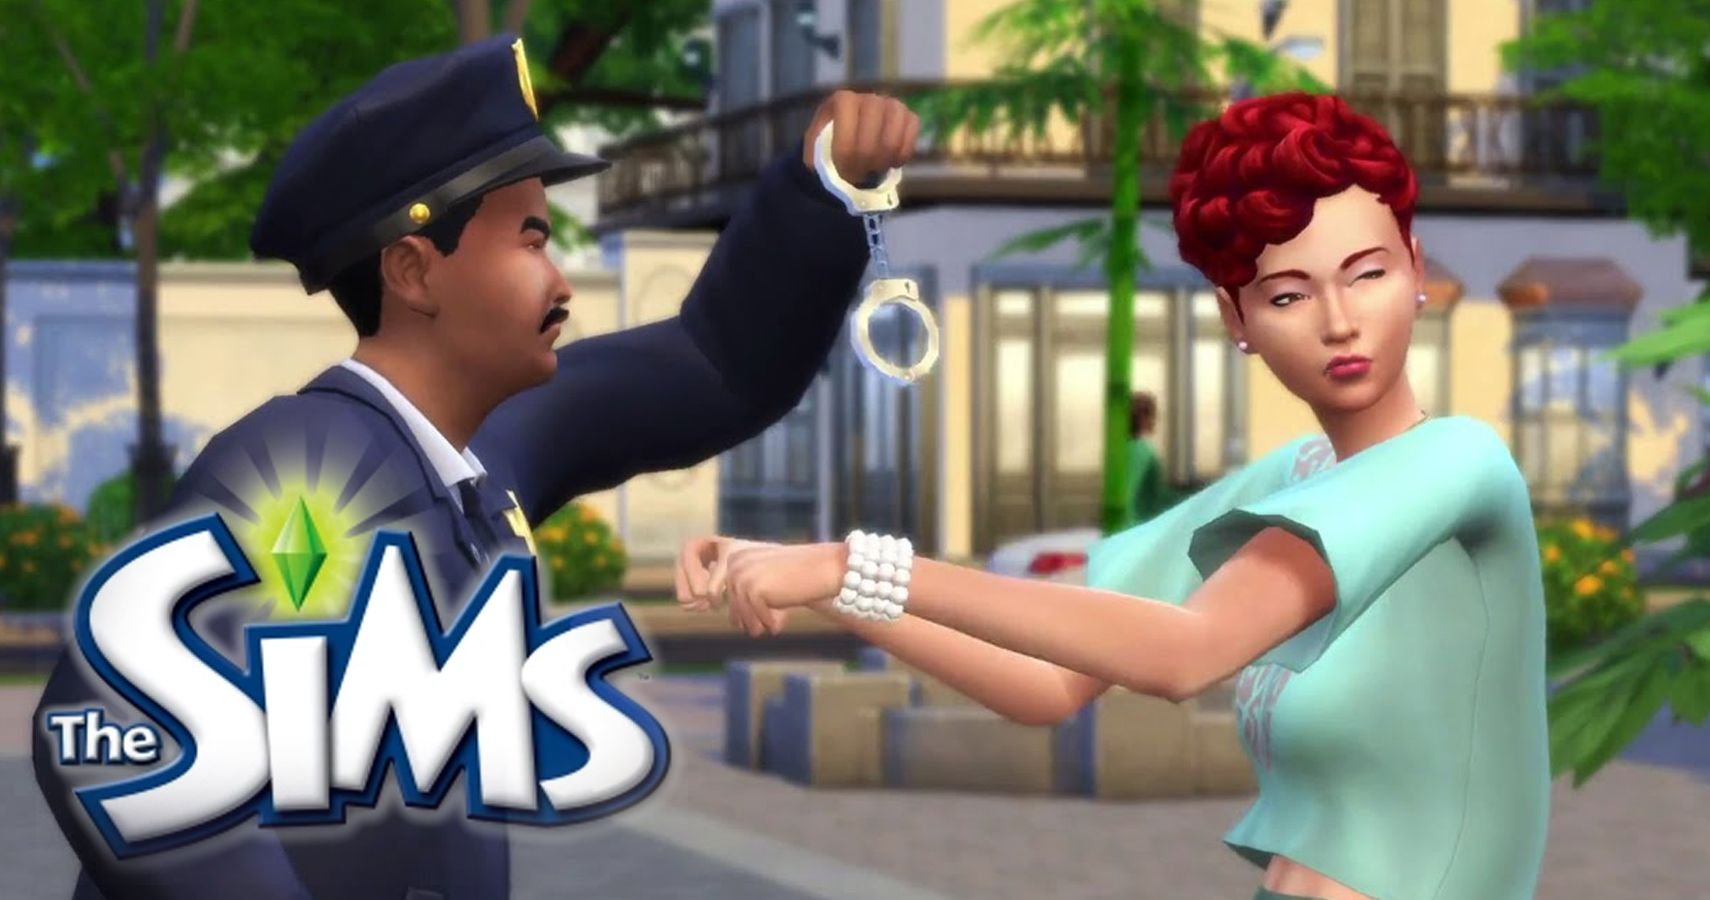 Times The Sims 4 Went Too Far   TheGamer